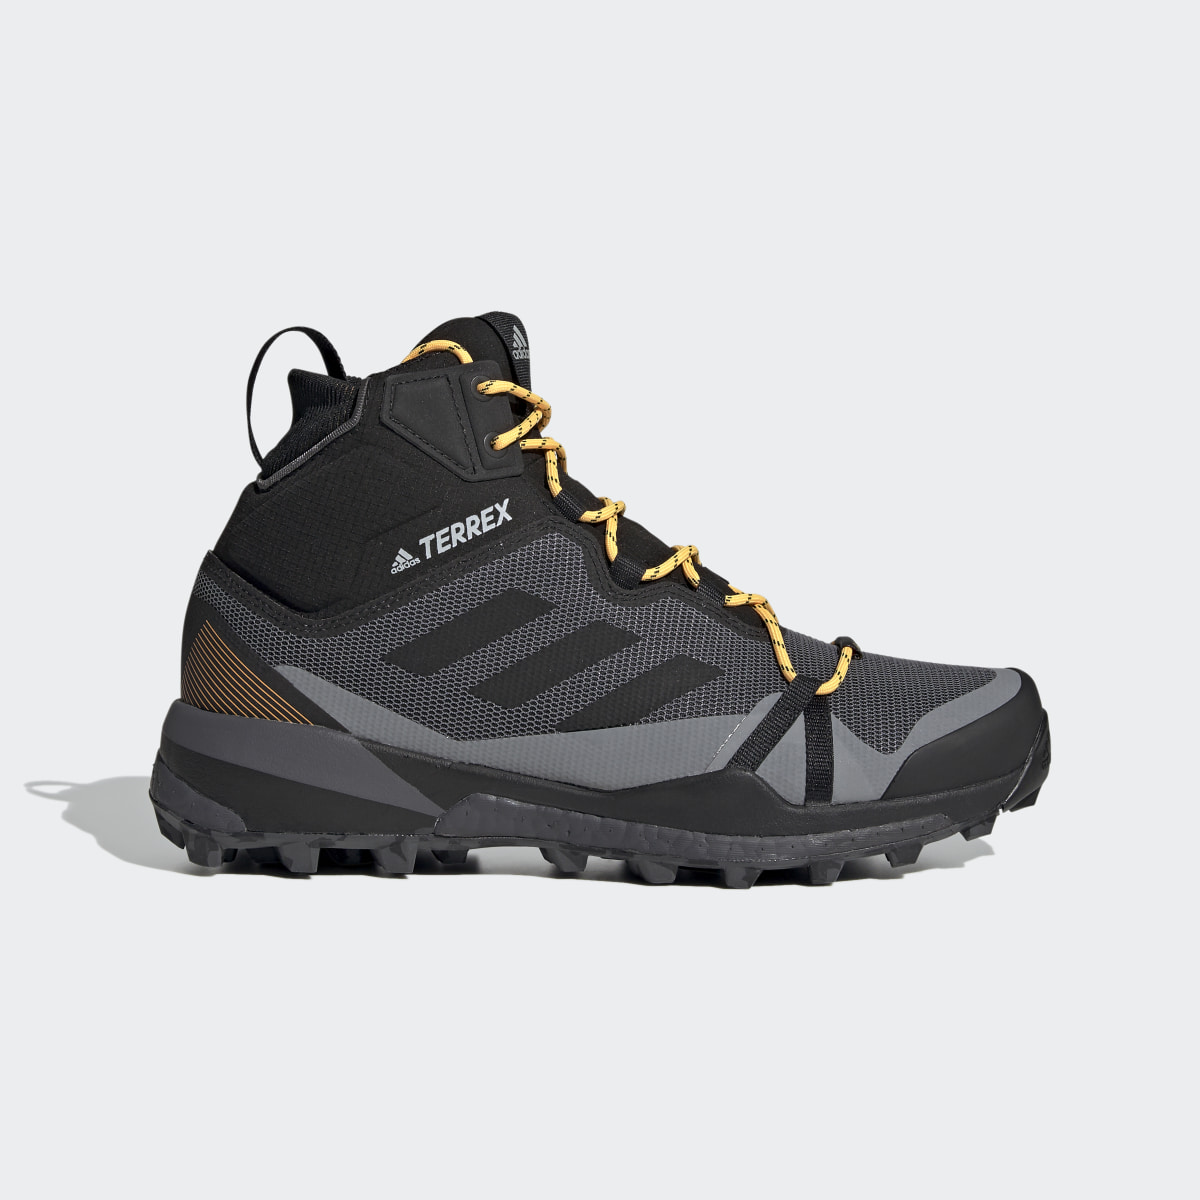 Terrex Skychaser LT Mid GORE-TEX Hiking Shoes